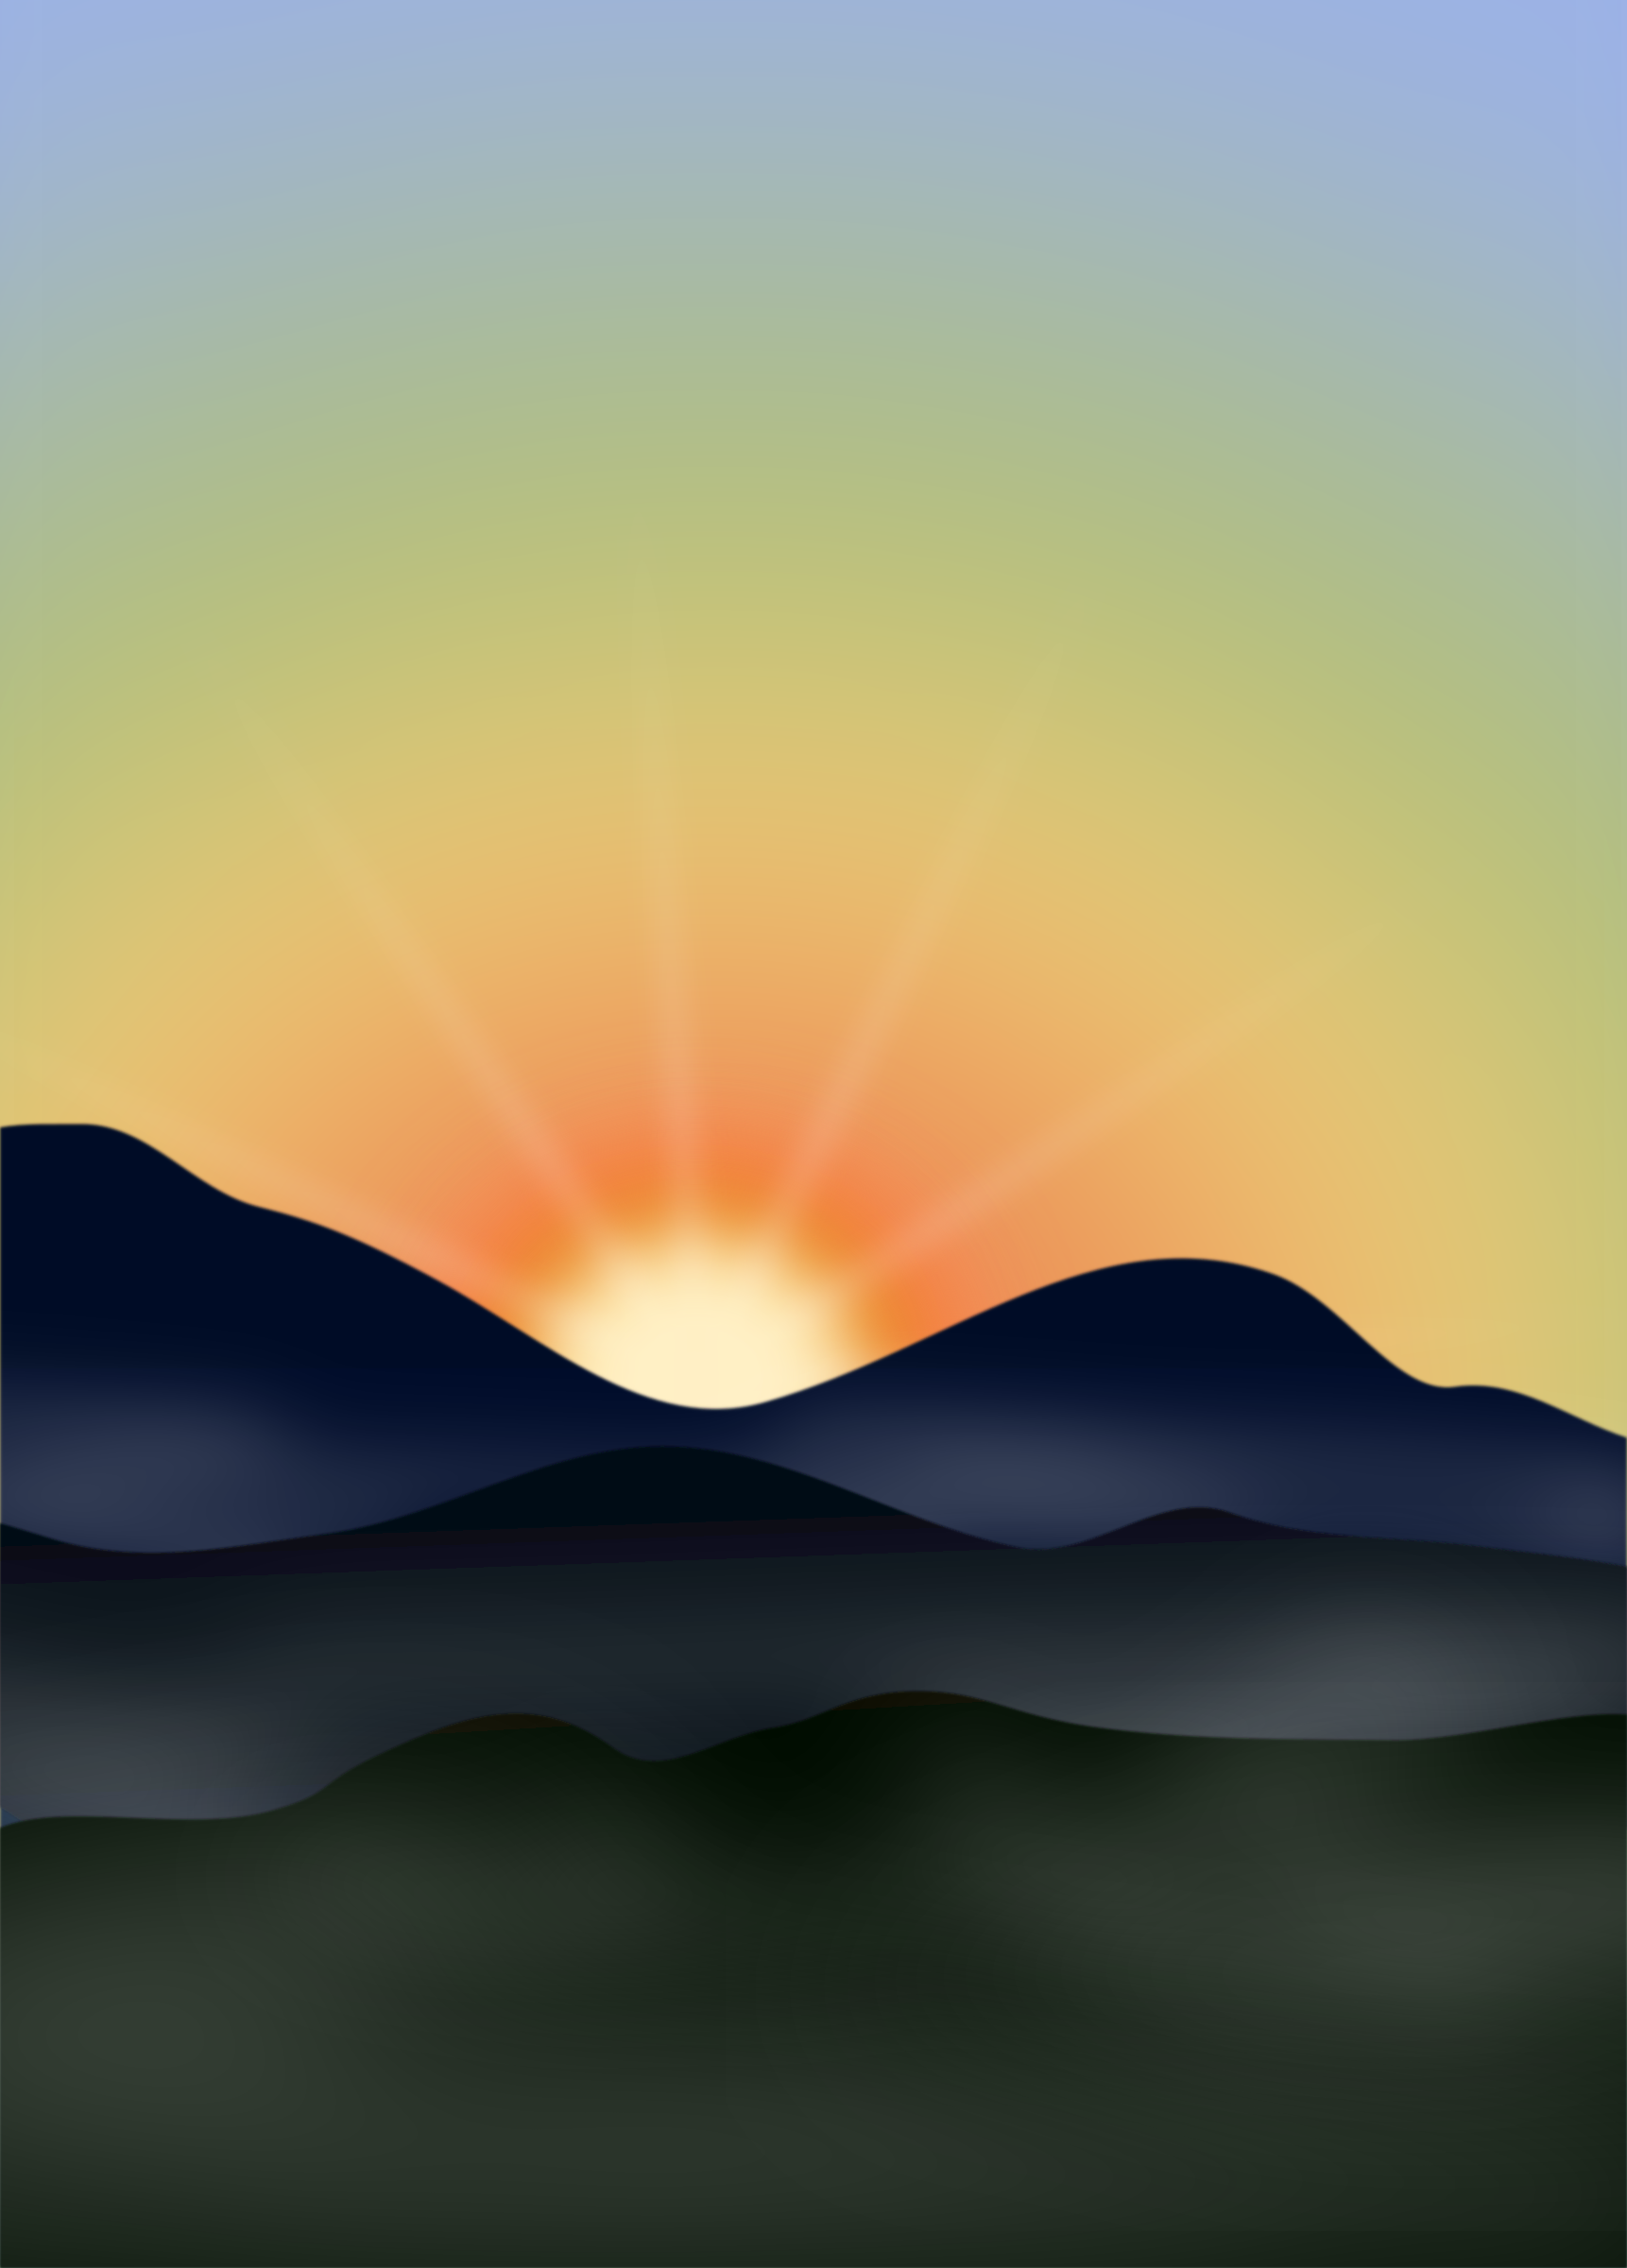 Sunset in the mountains by Moini